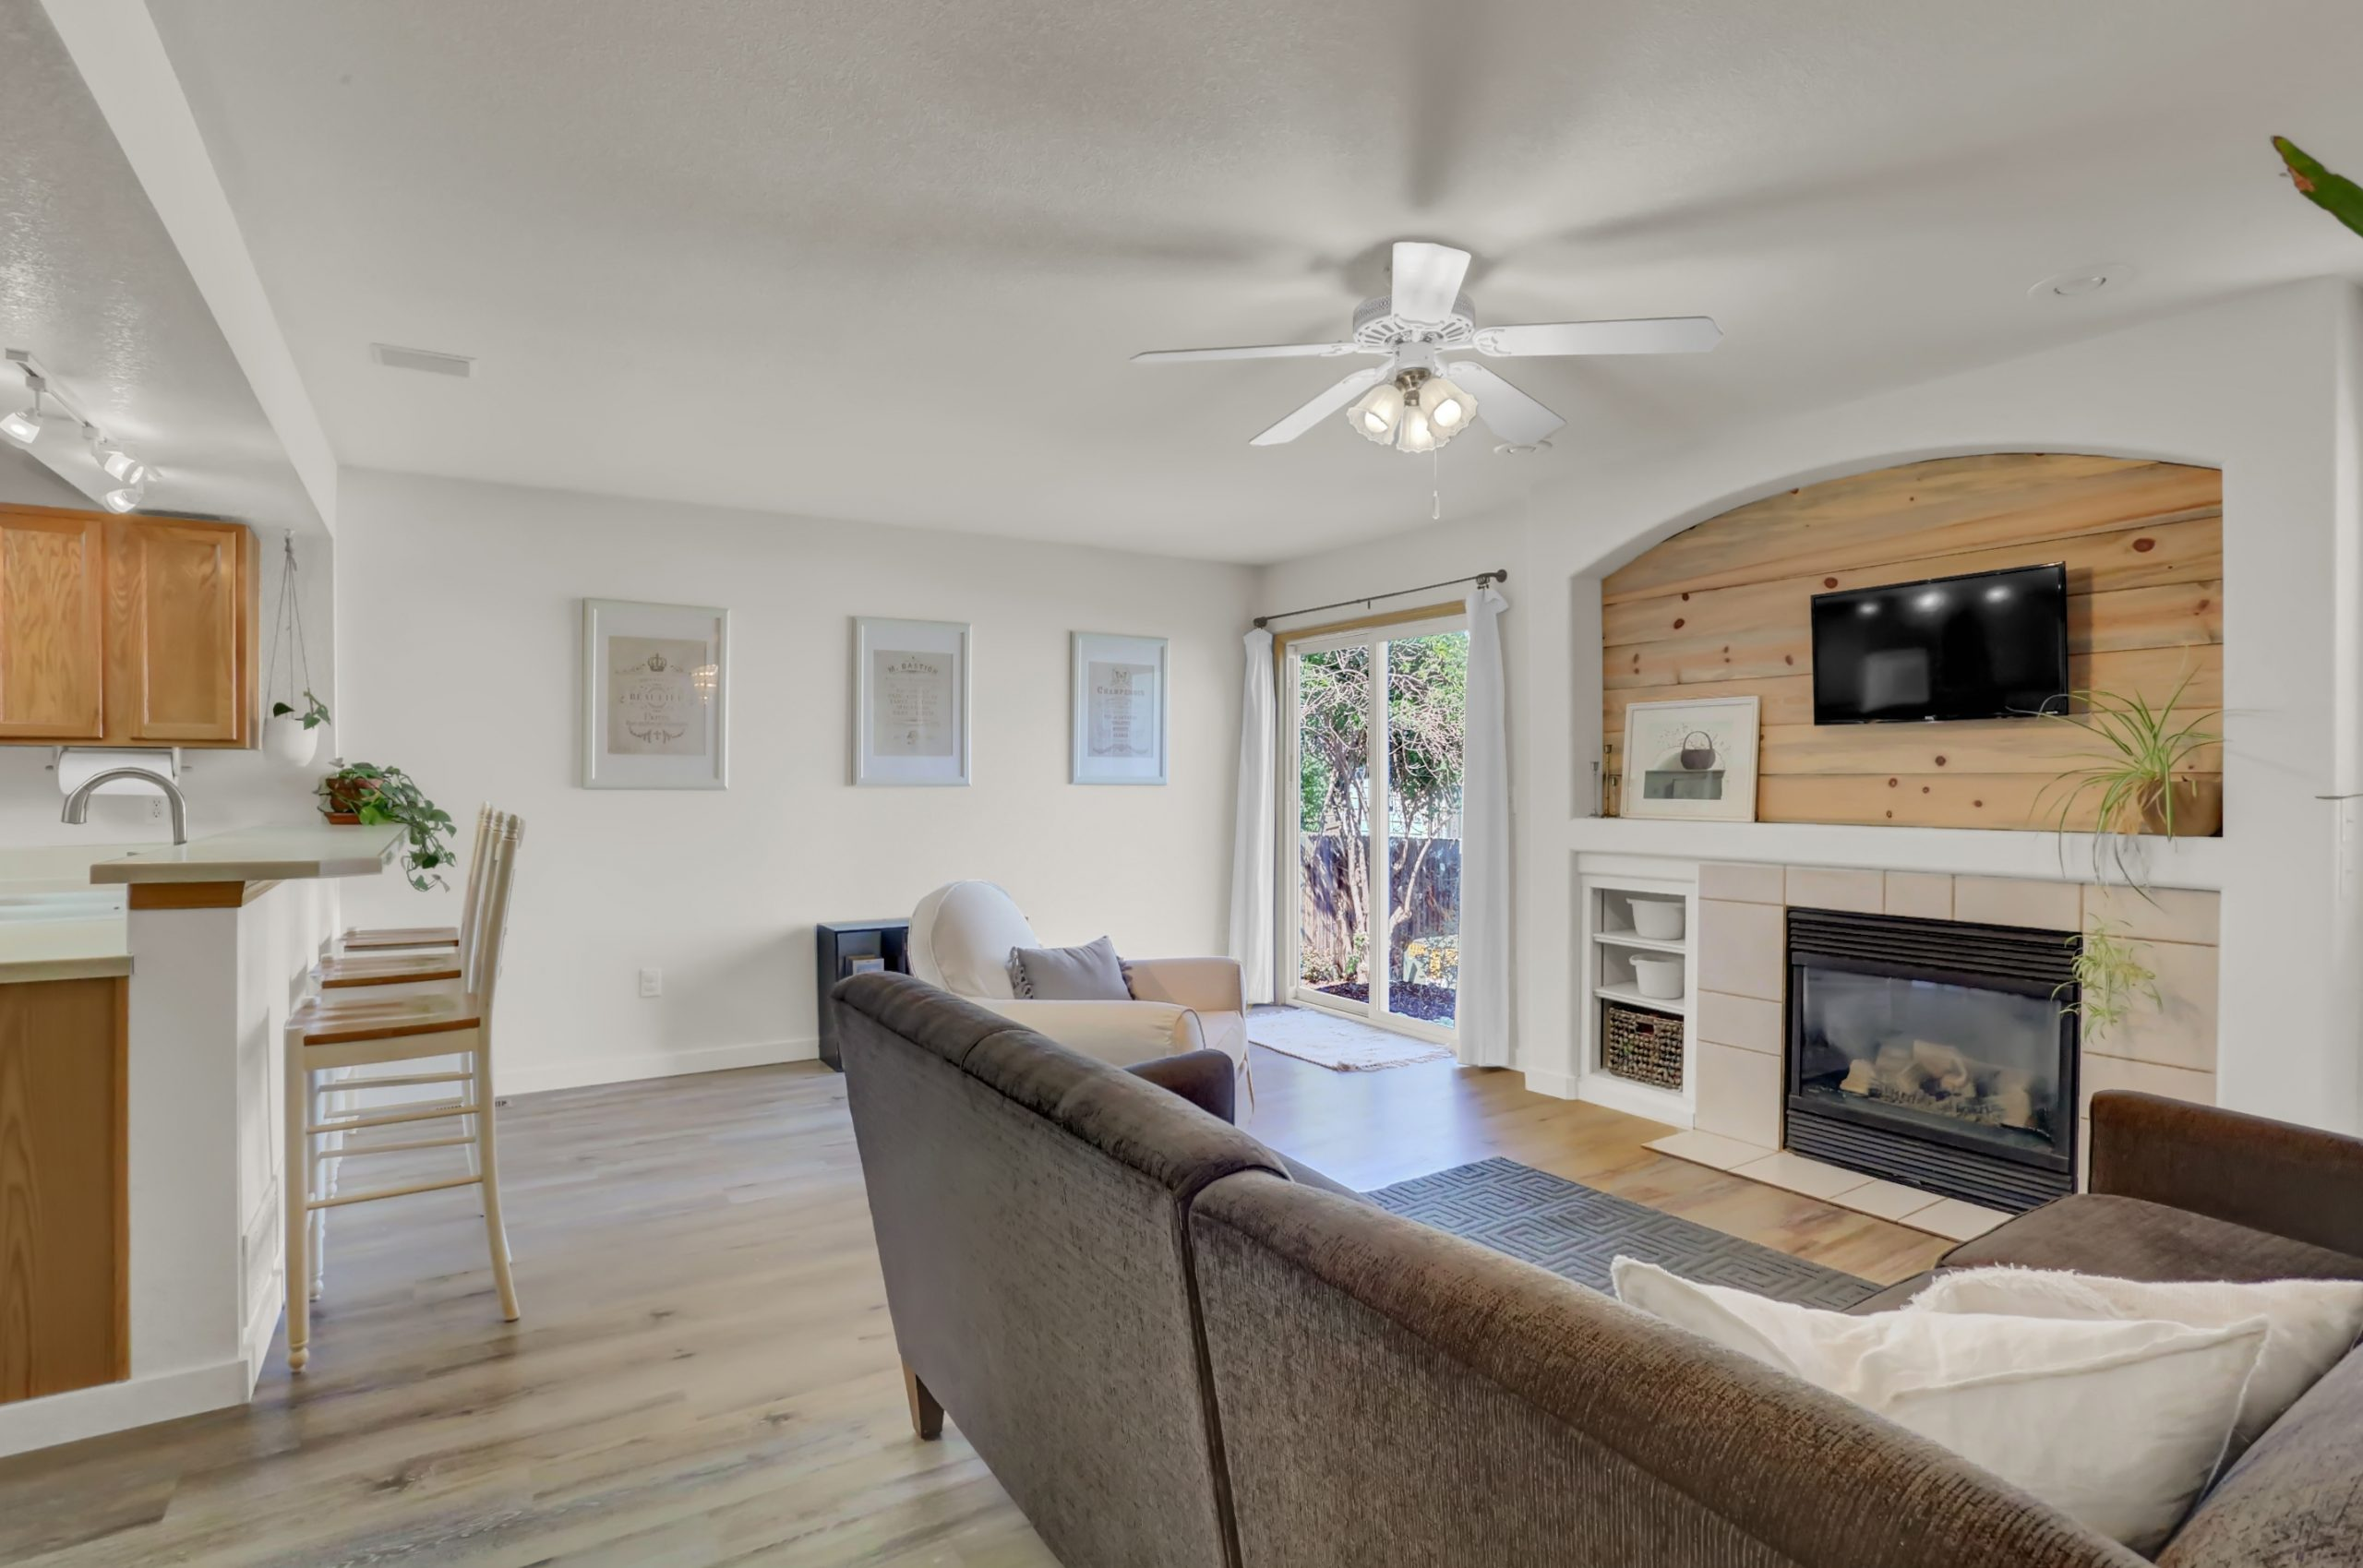 REAL ESTATE LISTING: 10502 Falcon St Firestone Family Room